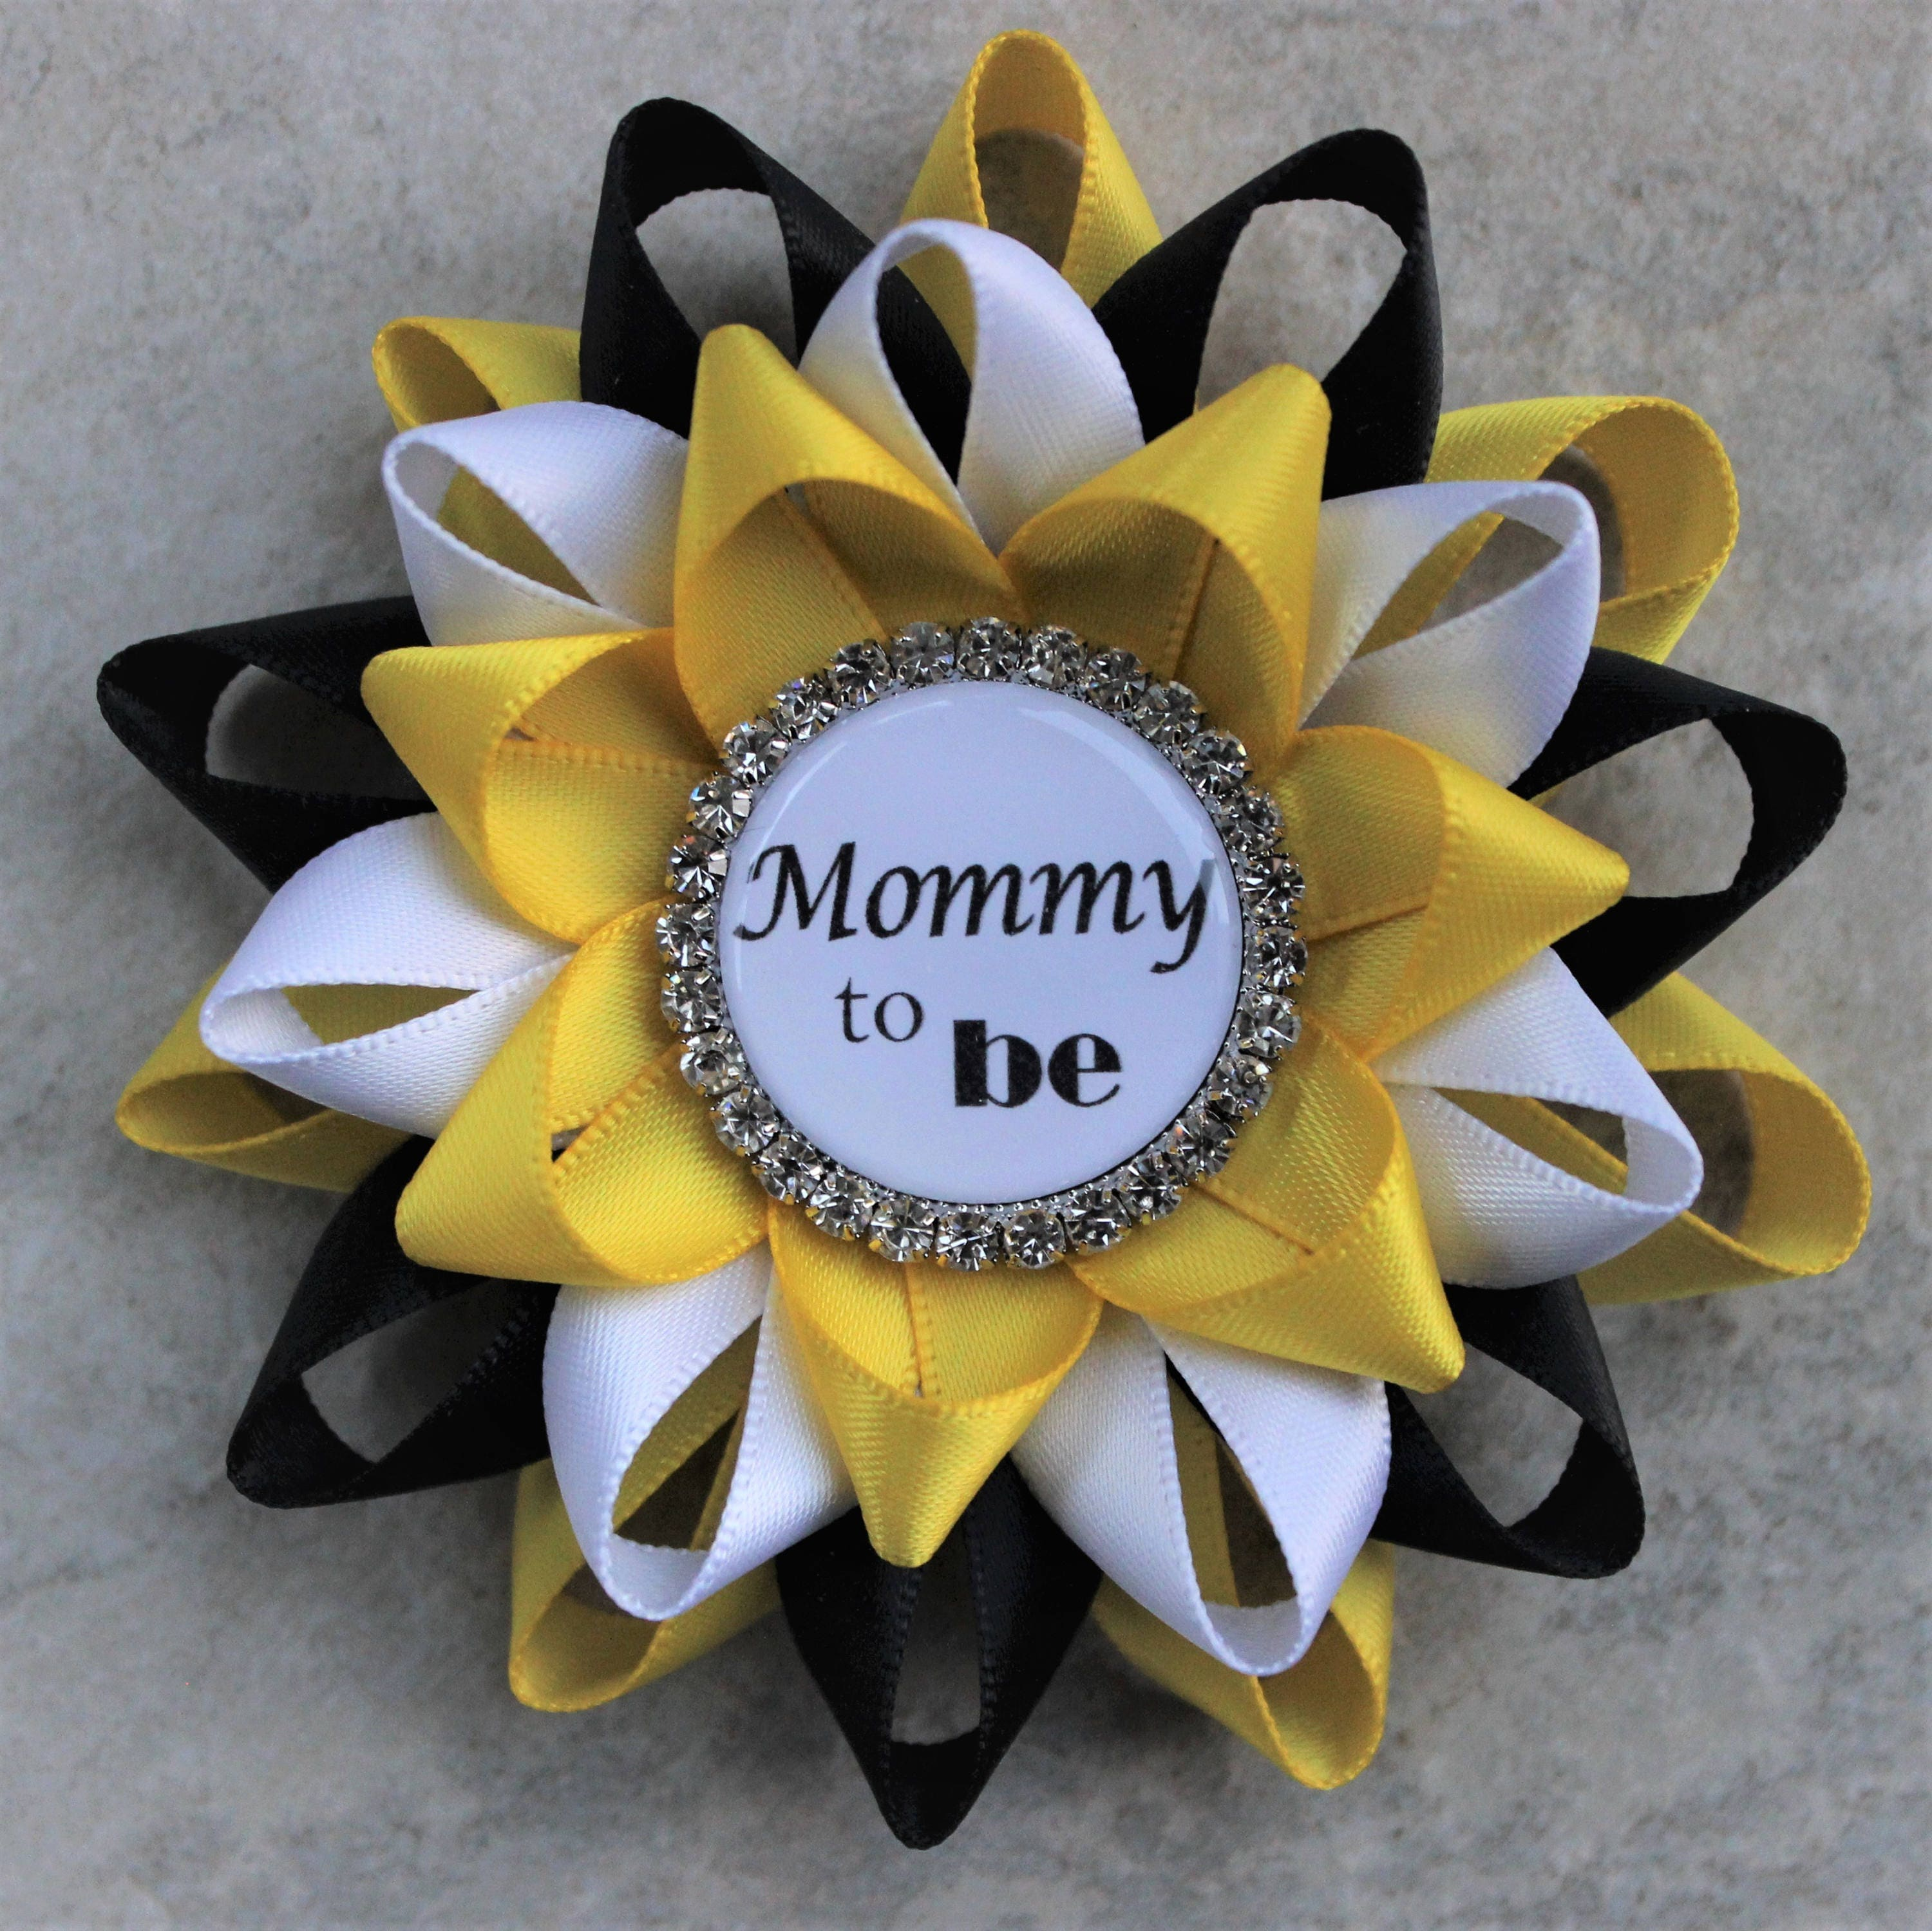 Bee Baby Shower Decorations, Black And Yellow Baby Shower Corsages, Bumble Bee  Themed Baby Shower, Mommy To Be, Yellow, Black, White